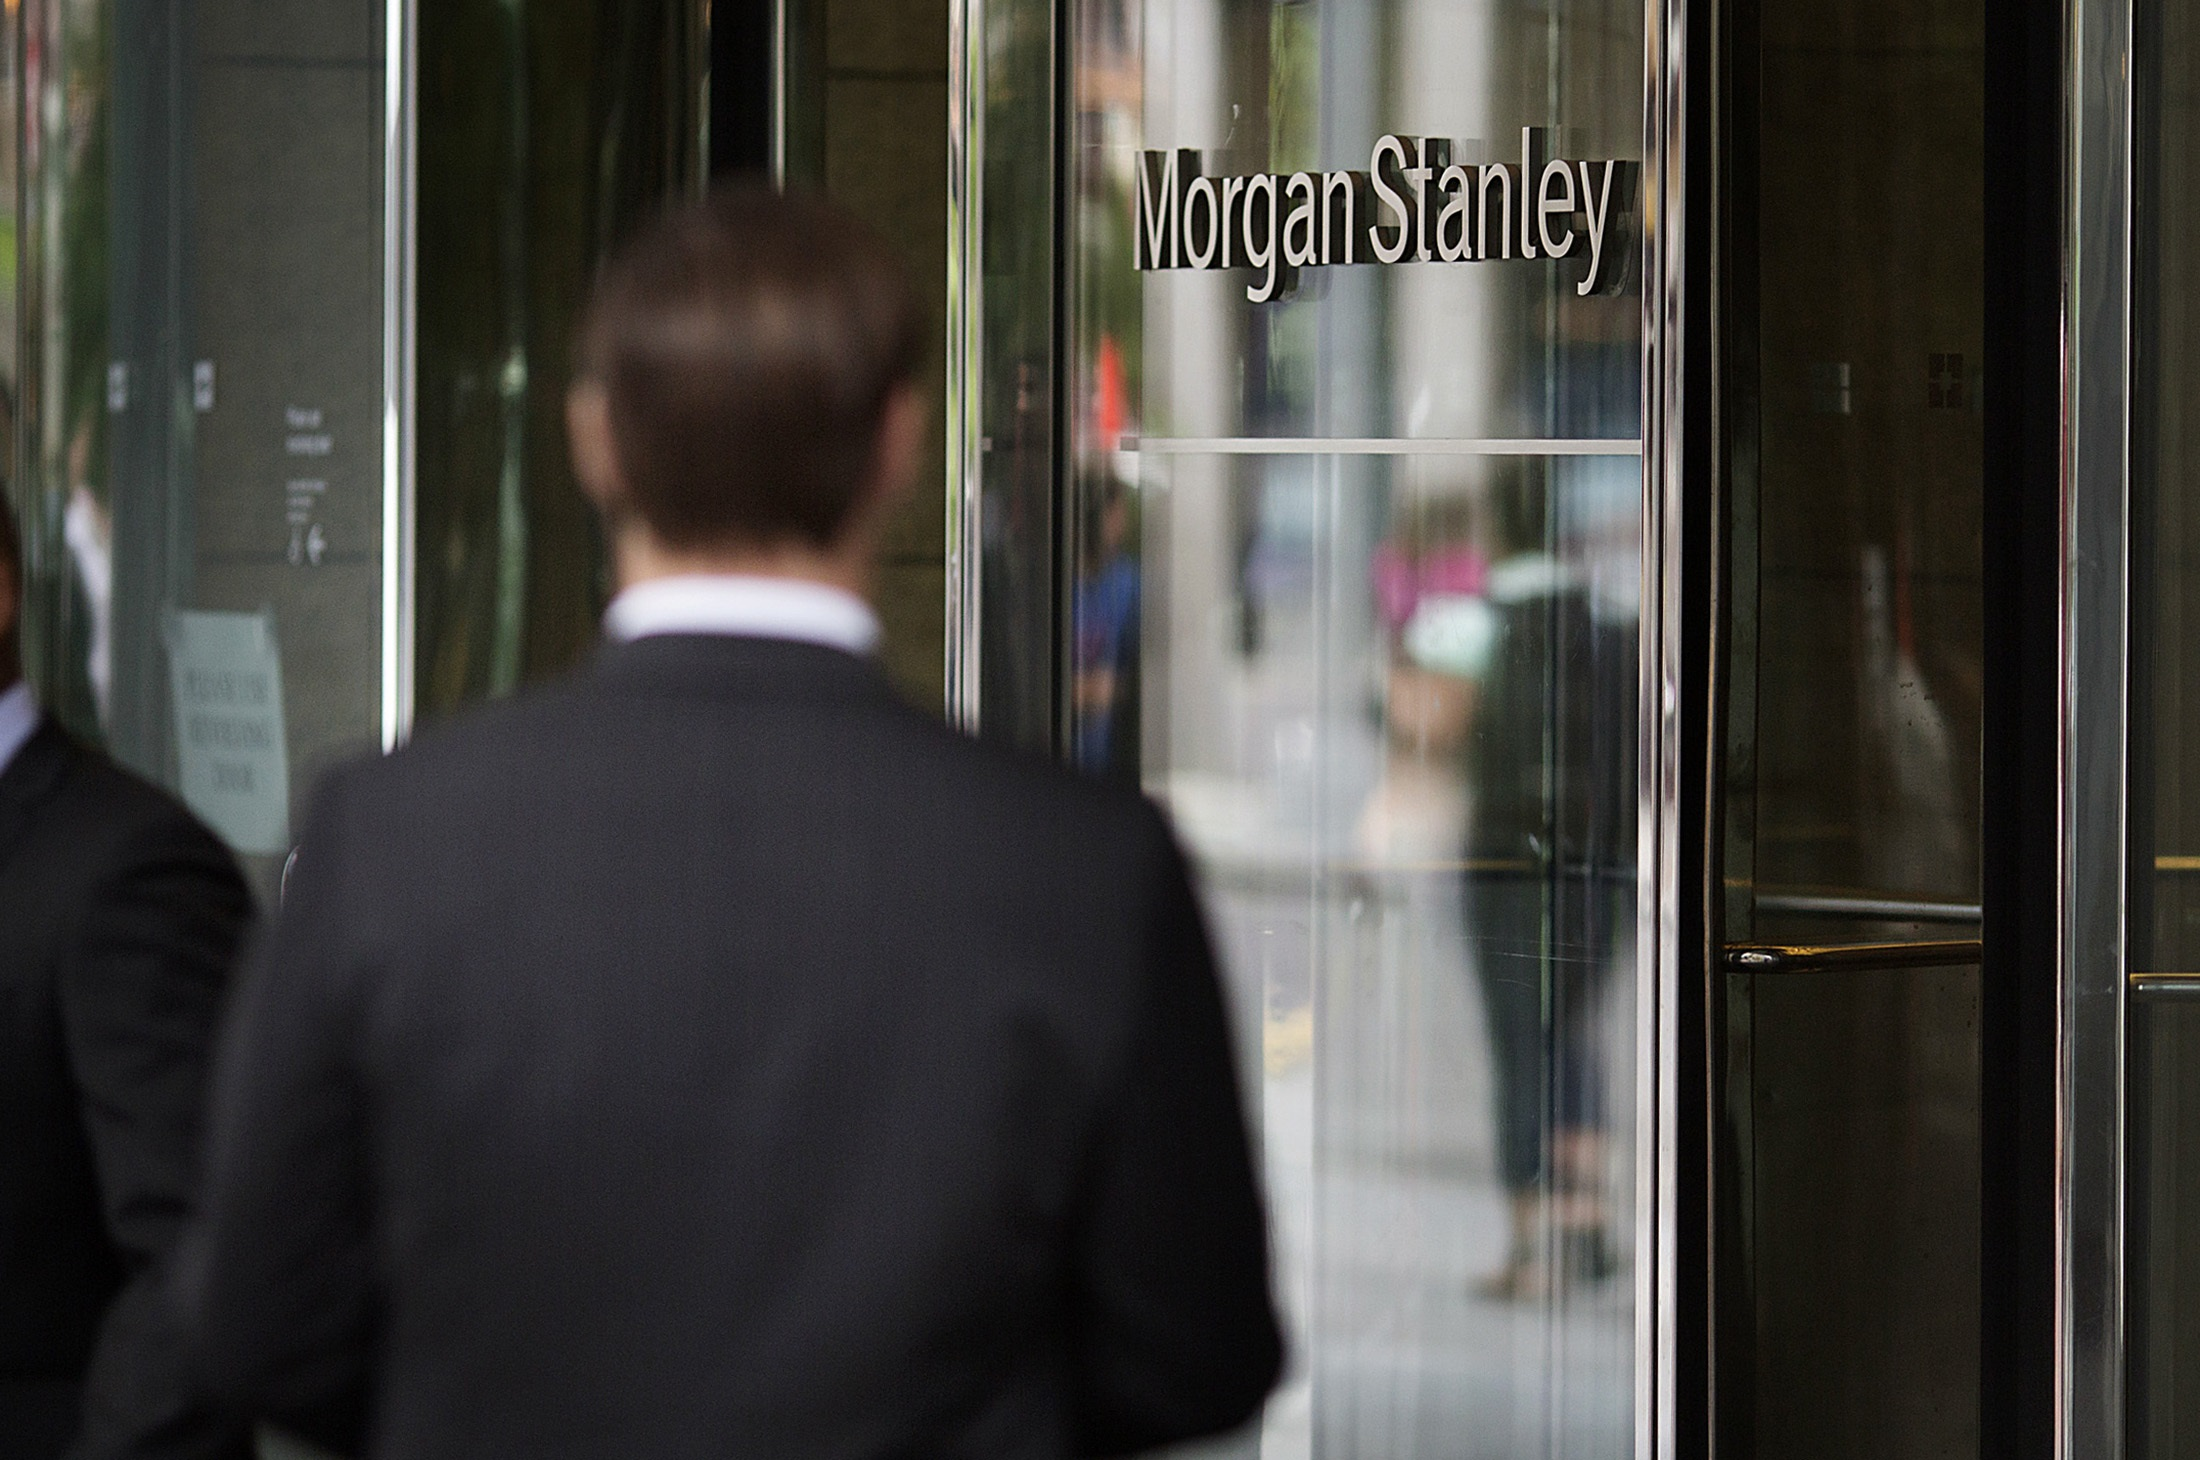 Morgan Stanley taps BlackRock to help lure $2T of Assets